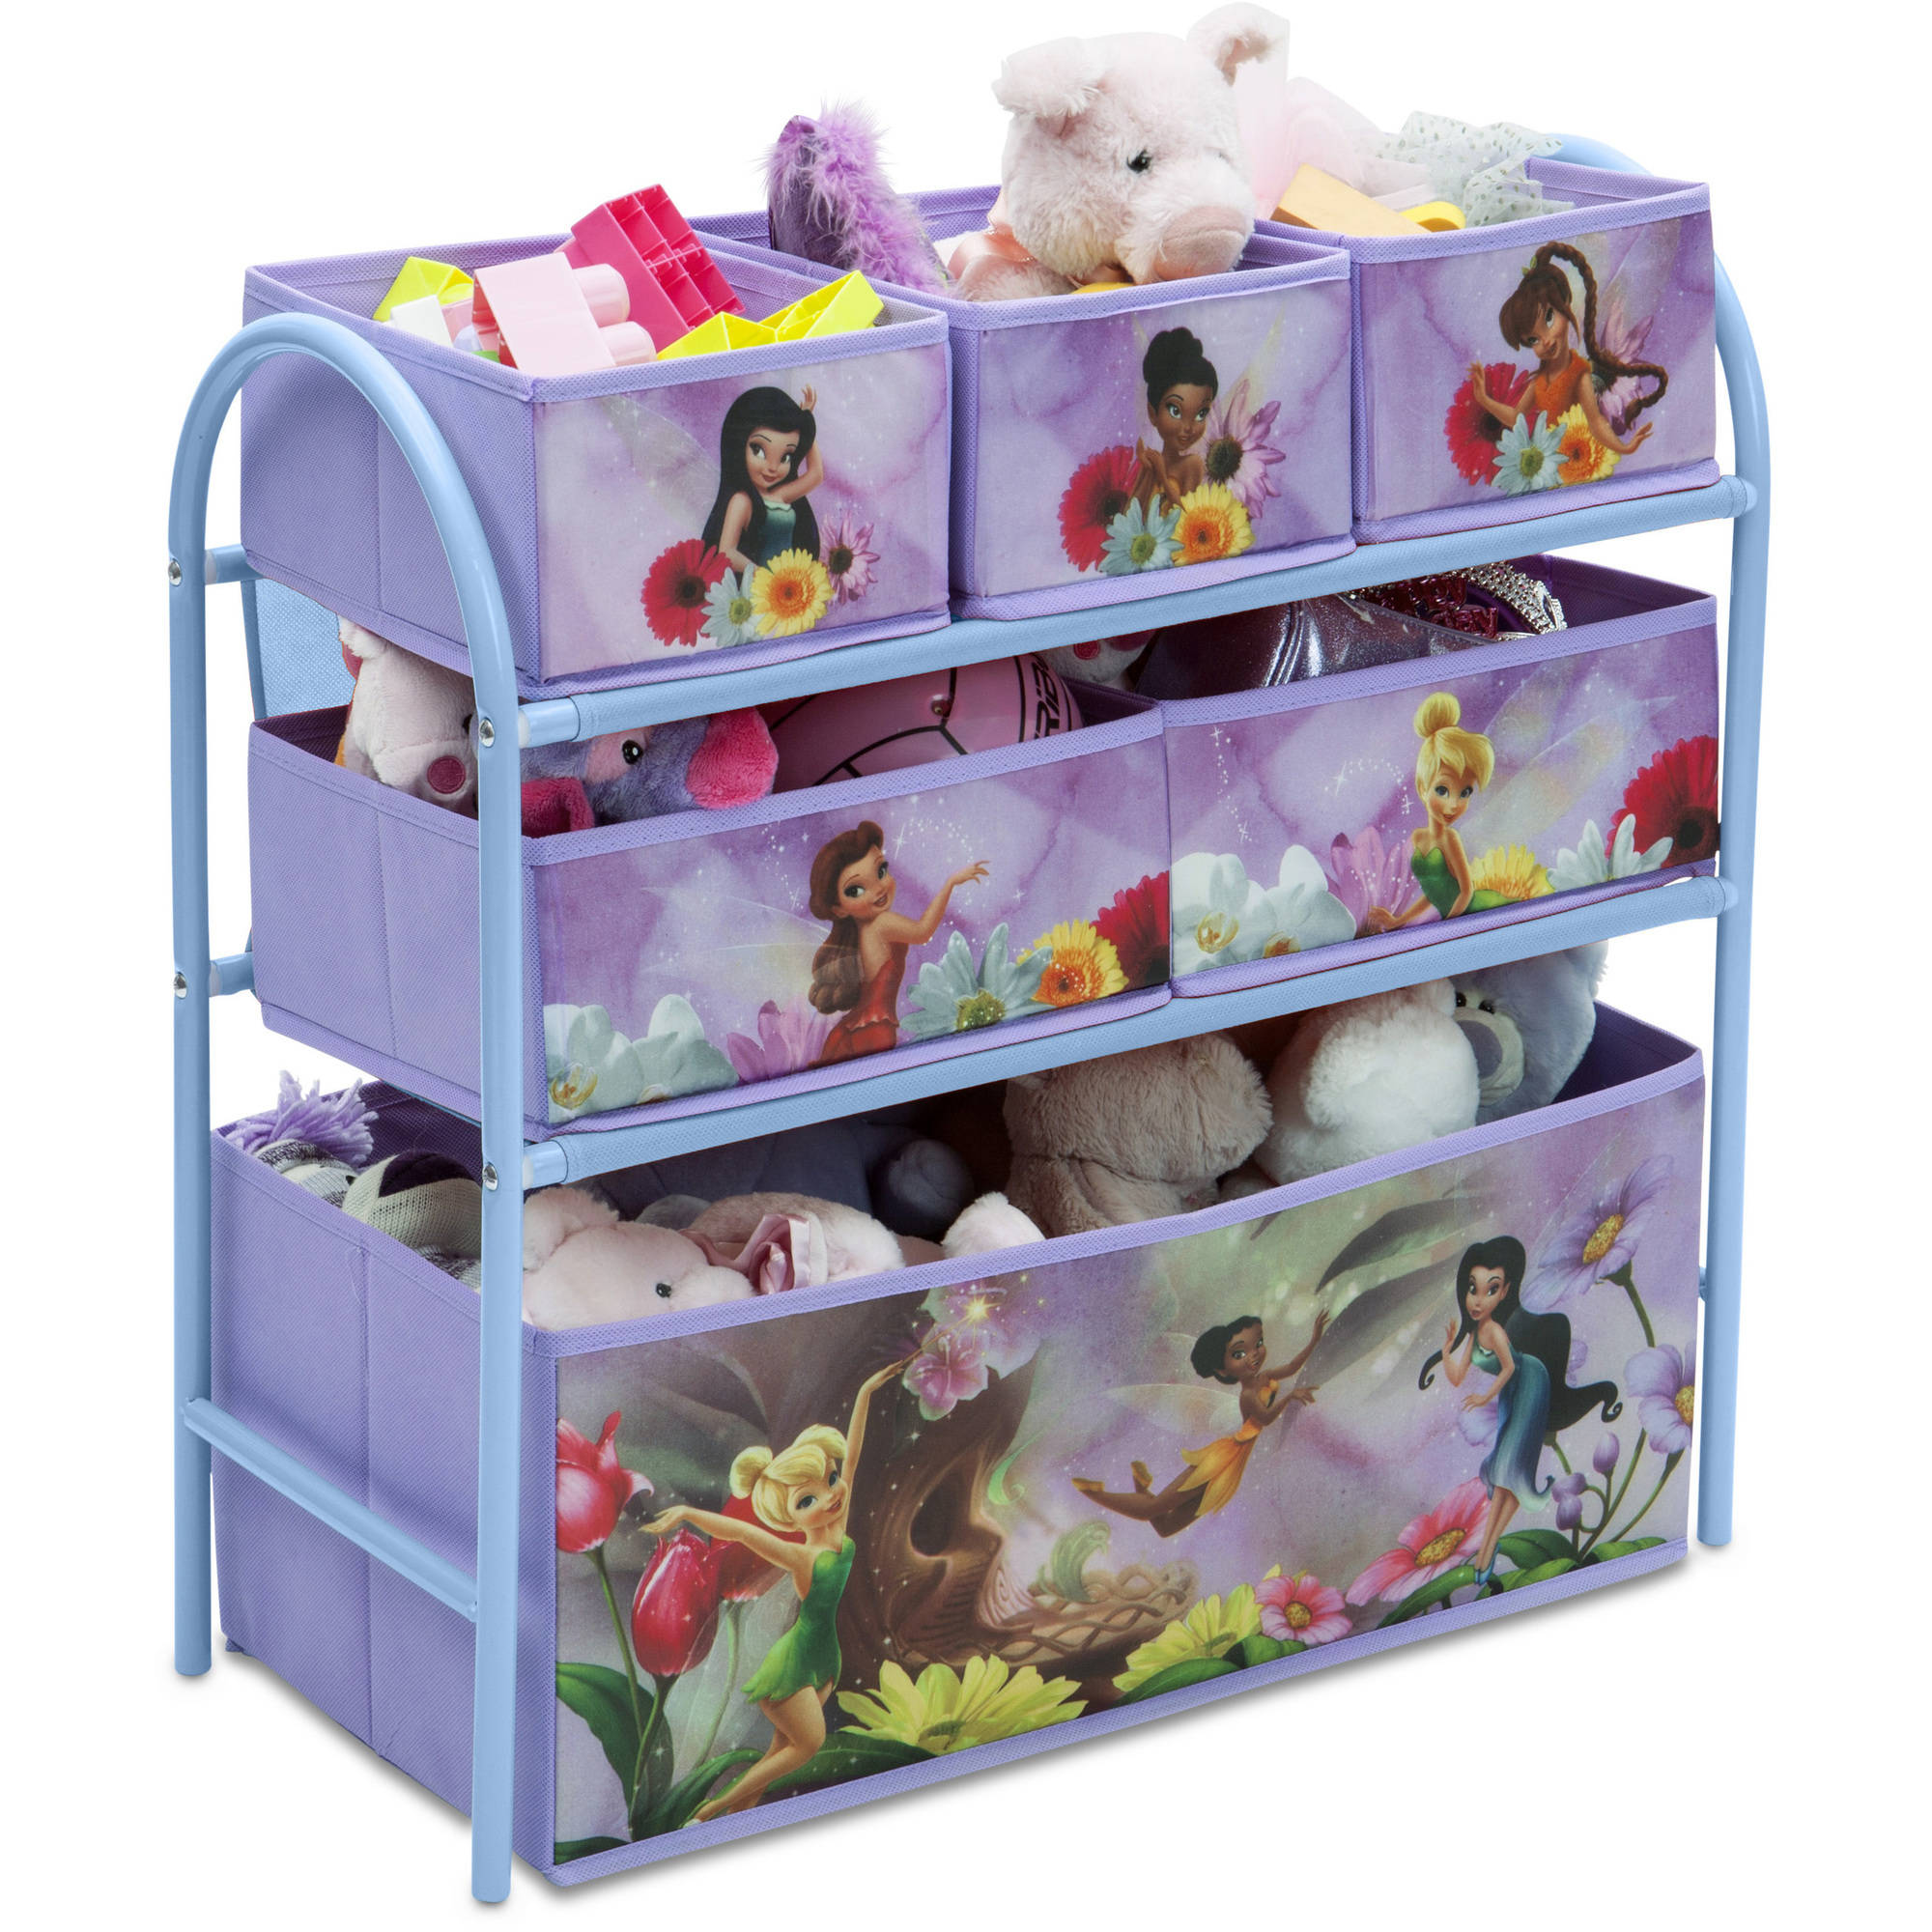 Disney Fairies Metal Multi-Bin Toy Organizer, Lavender